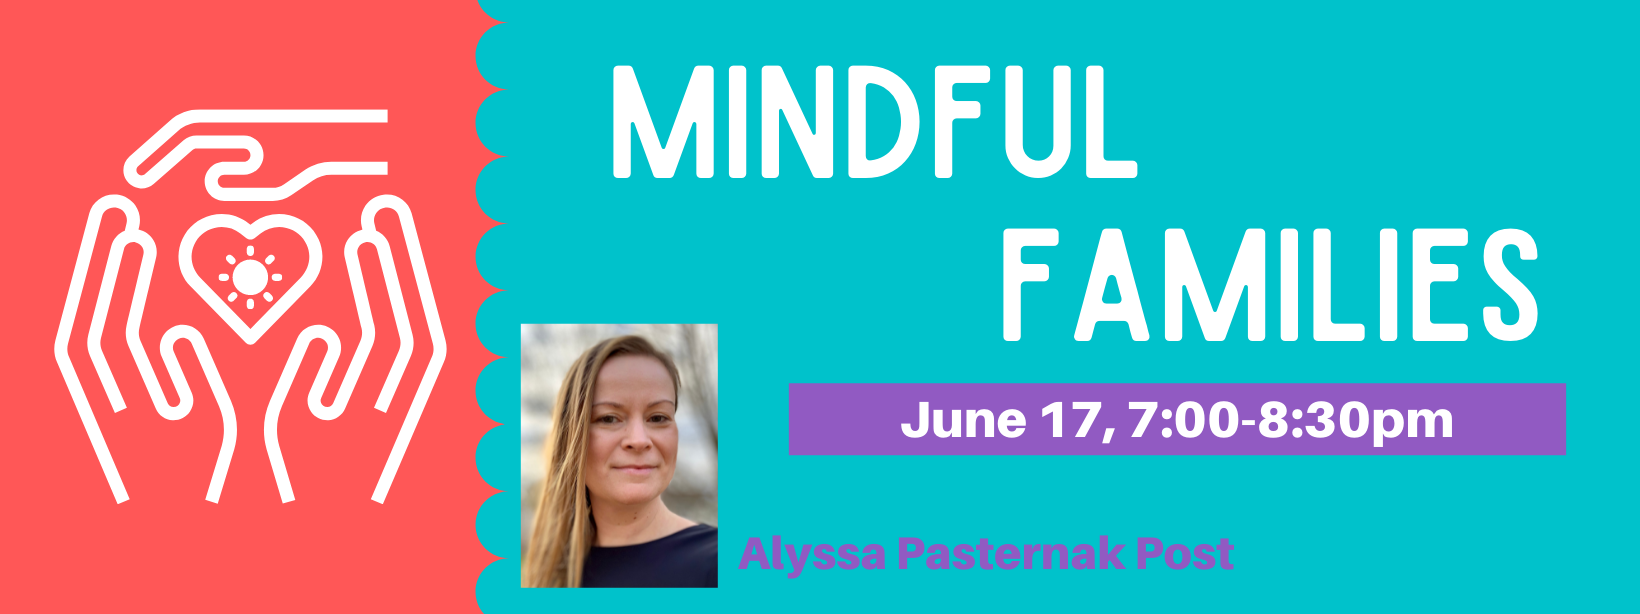 Mindful Families: Spiritual Practices for the Summer